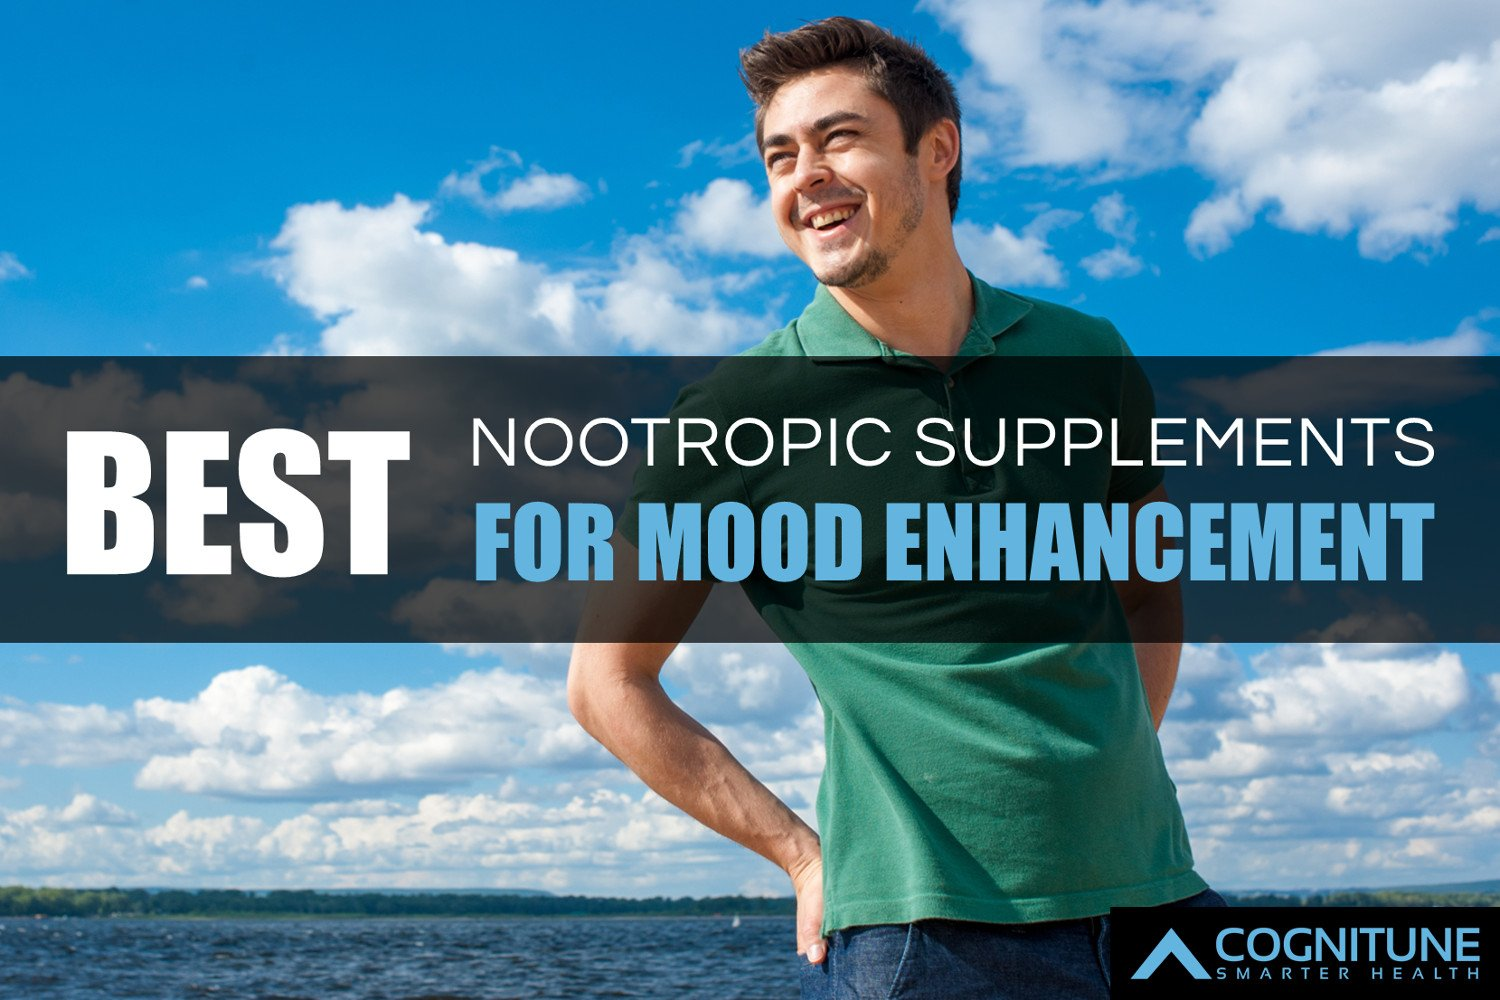 12 Best Nootropic Supplements For Mood Enhancement Stabilization 2019